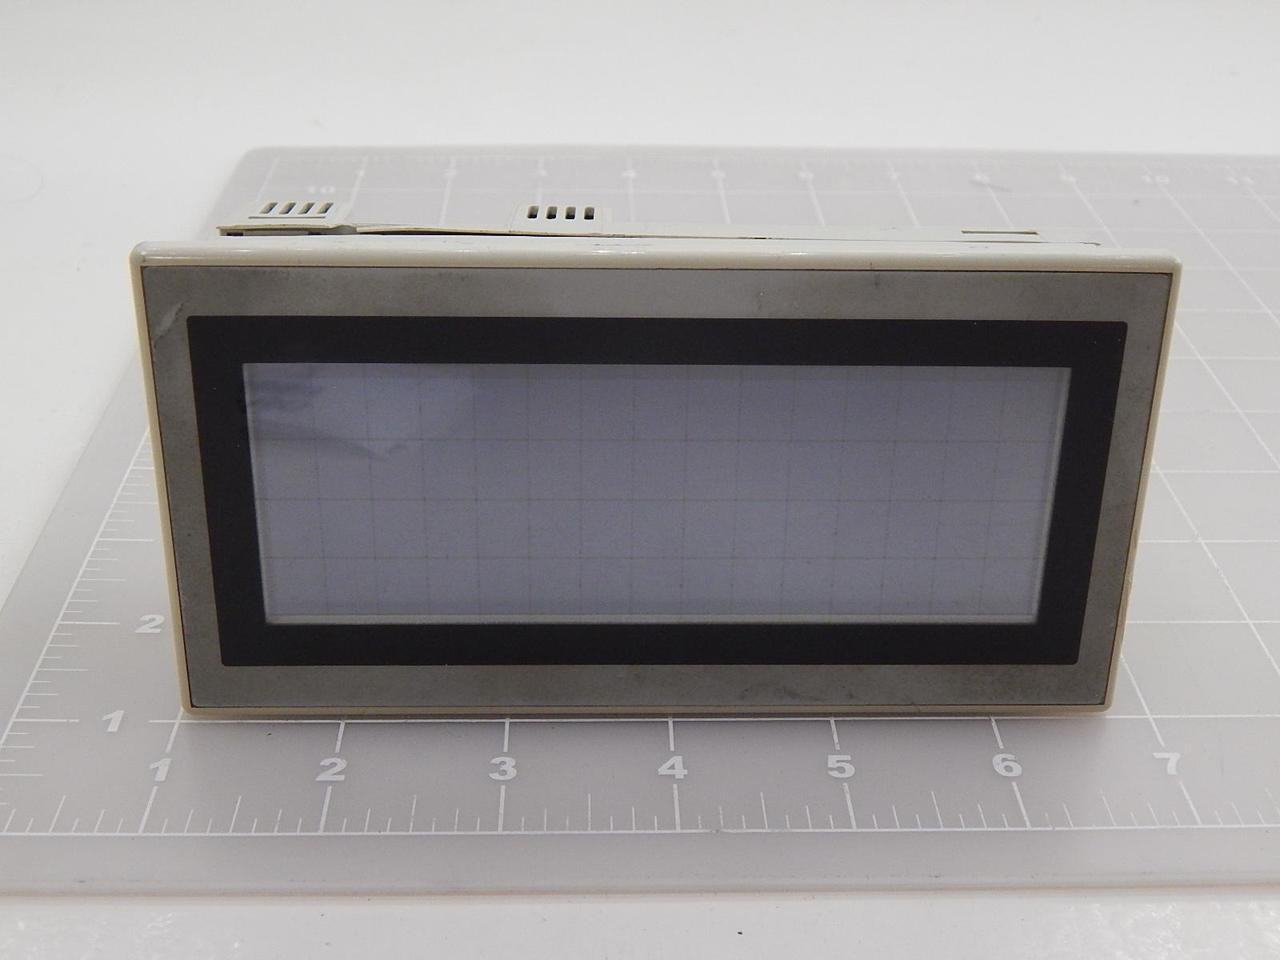 Used Mitsubishi F930GOT-BWD Touch Panel Tested